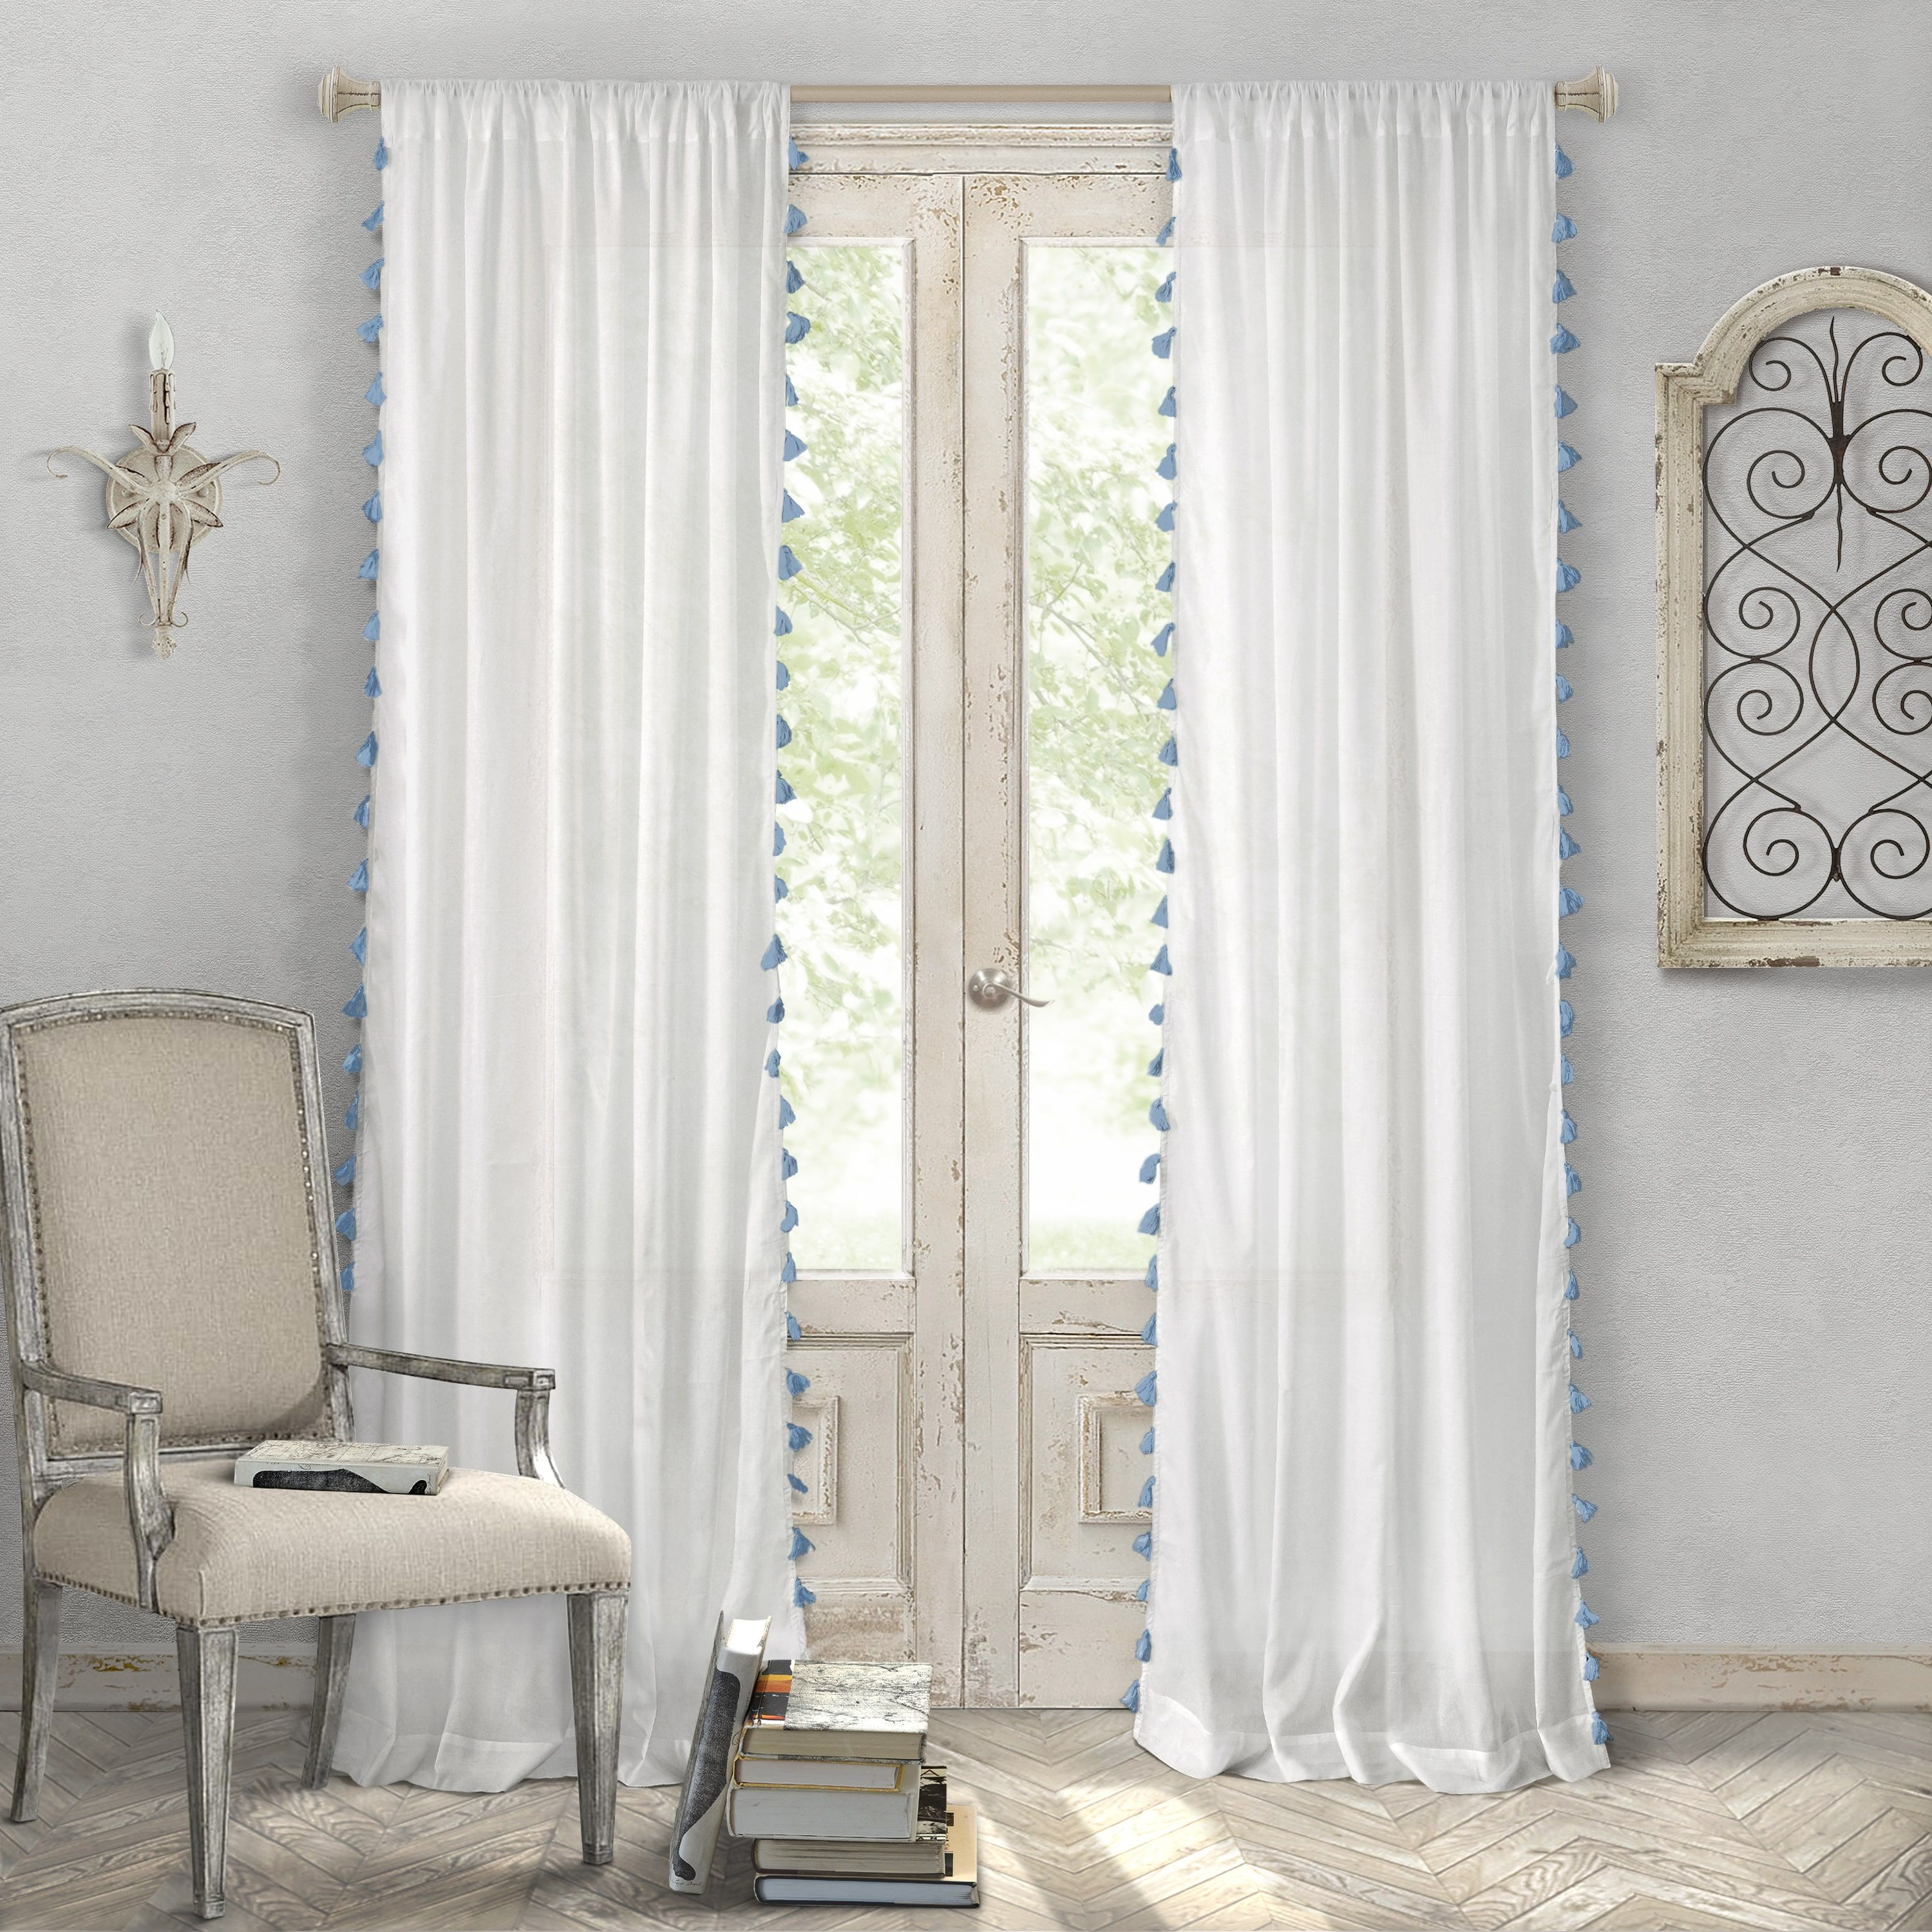 Curtain pair overstock shopping great deals on lights out curtains - Elrene Bianca Tassel Cotton Curtain Panel By Elrene Elrene Bianca Tassel Cotton Curtain Panel Overstock Com Shopping The Best Deals On Curtains